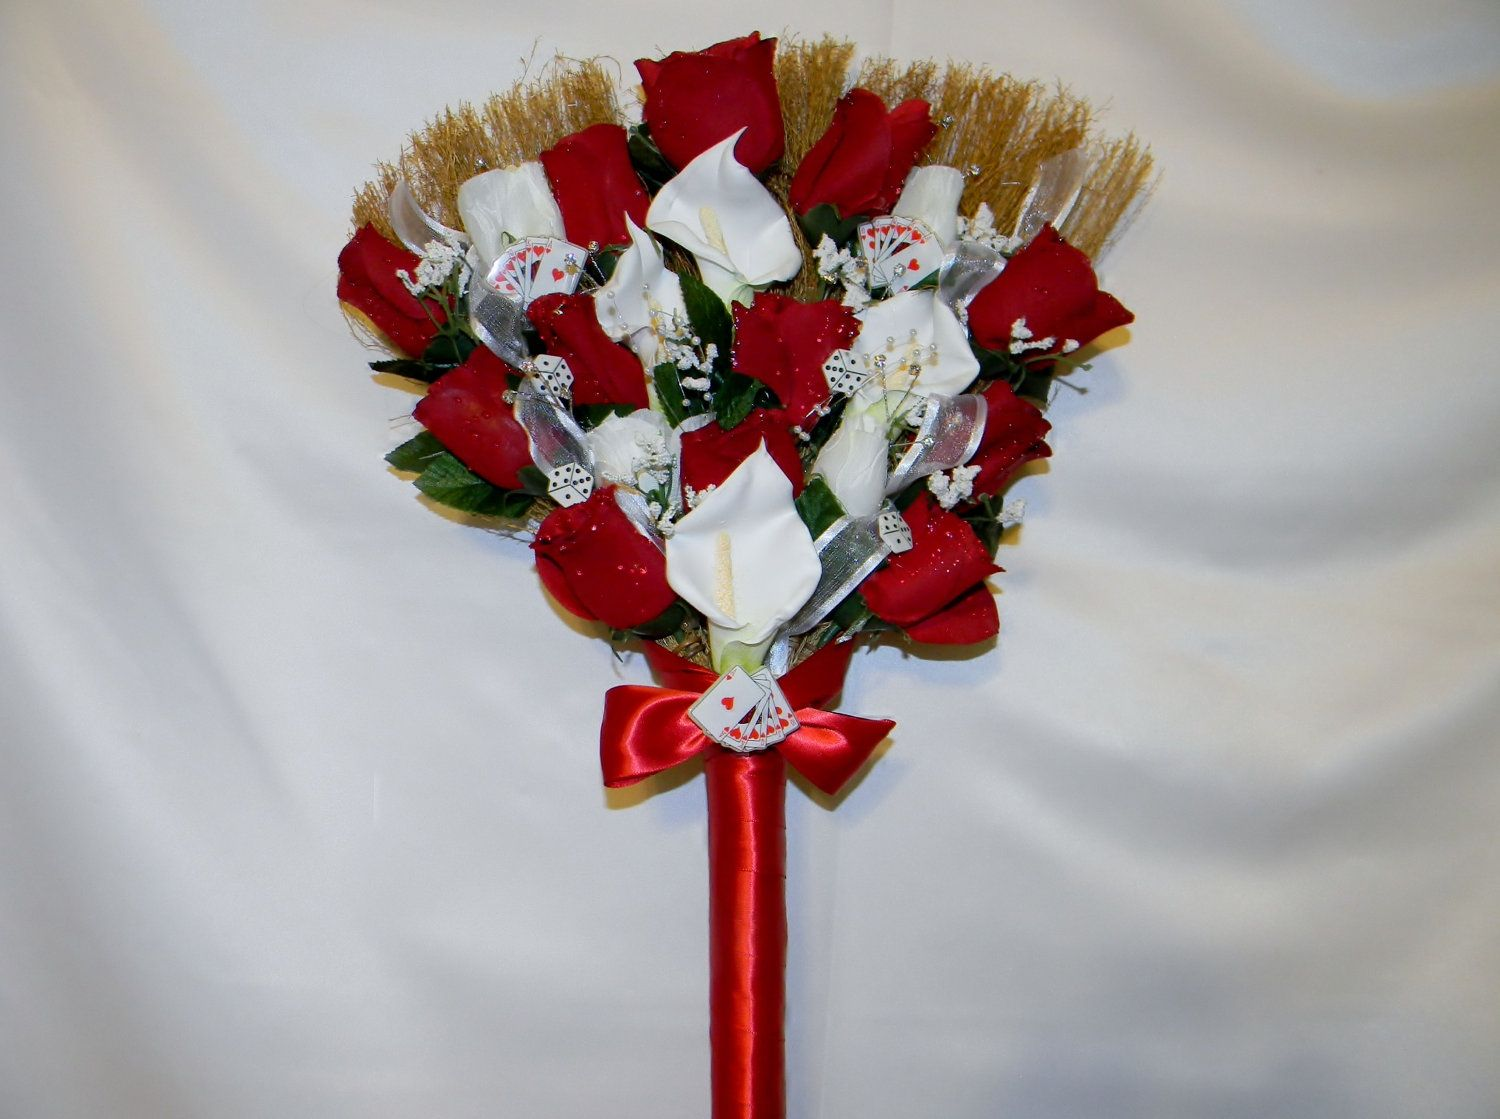 Pictures Of Wedding Brooms Jumping Broom Custom Made White Red Black Las Vegas Theme